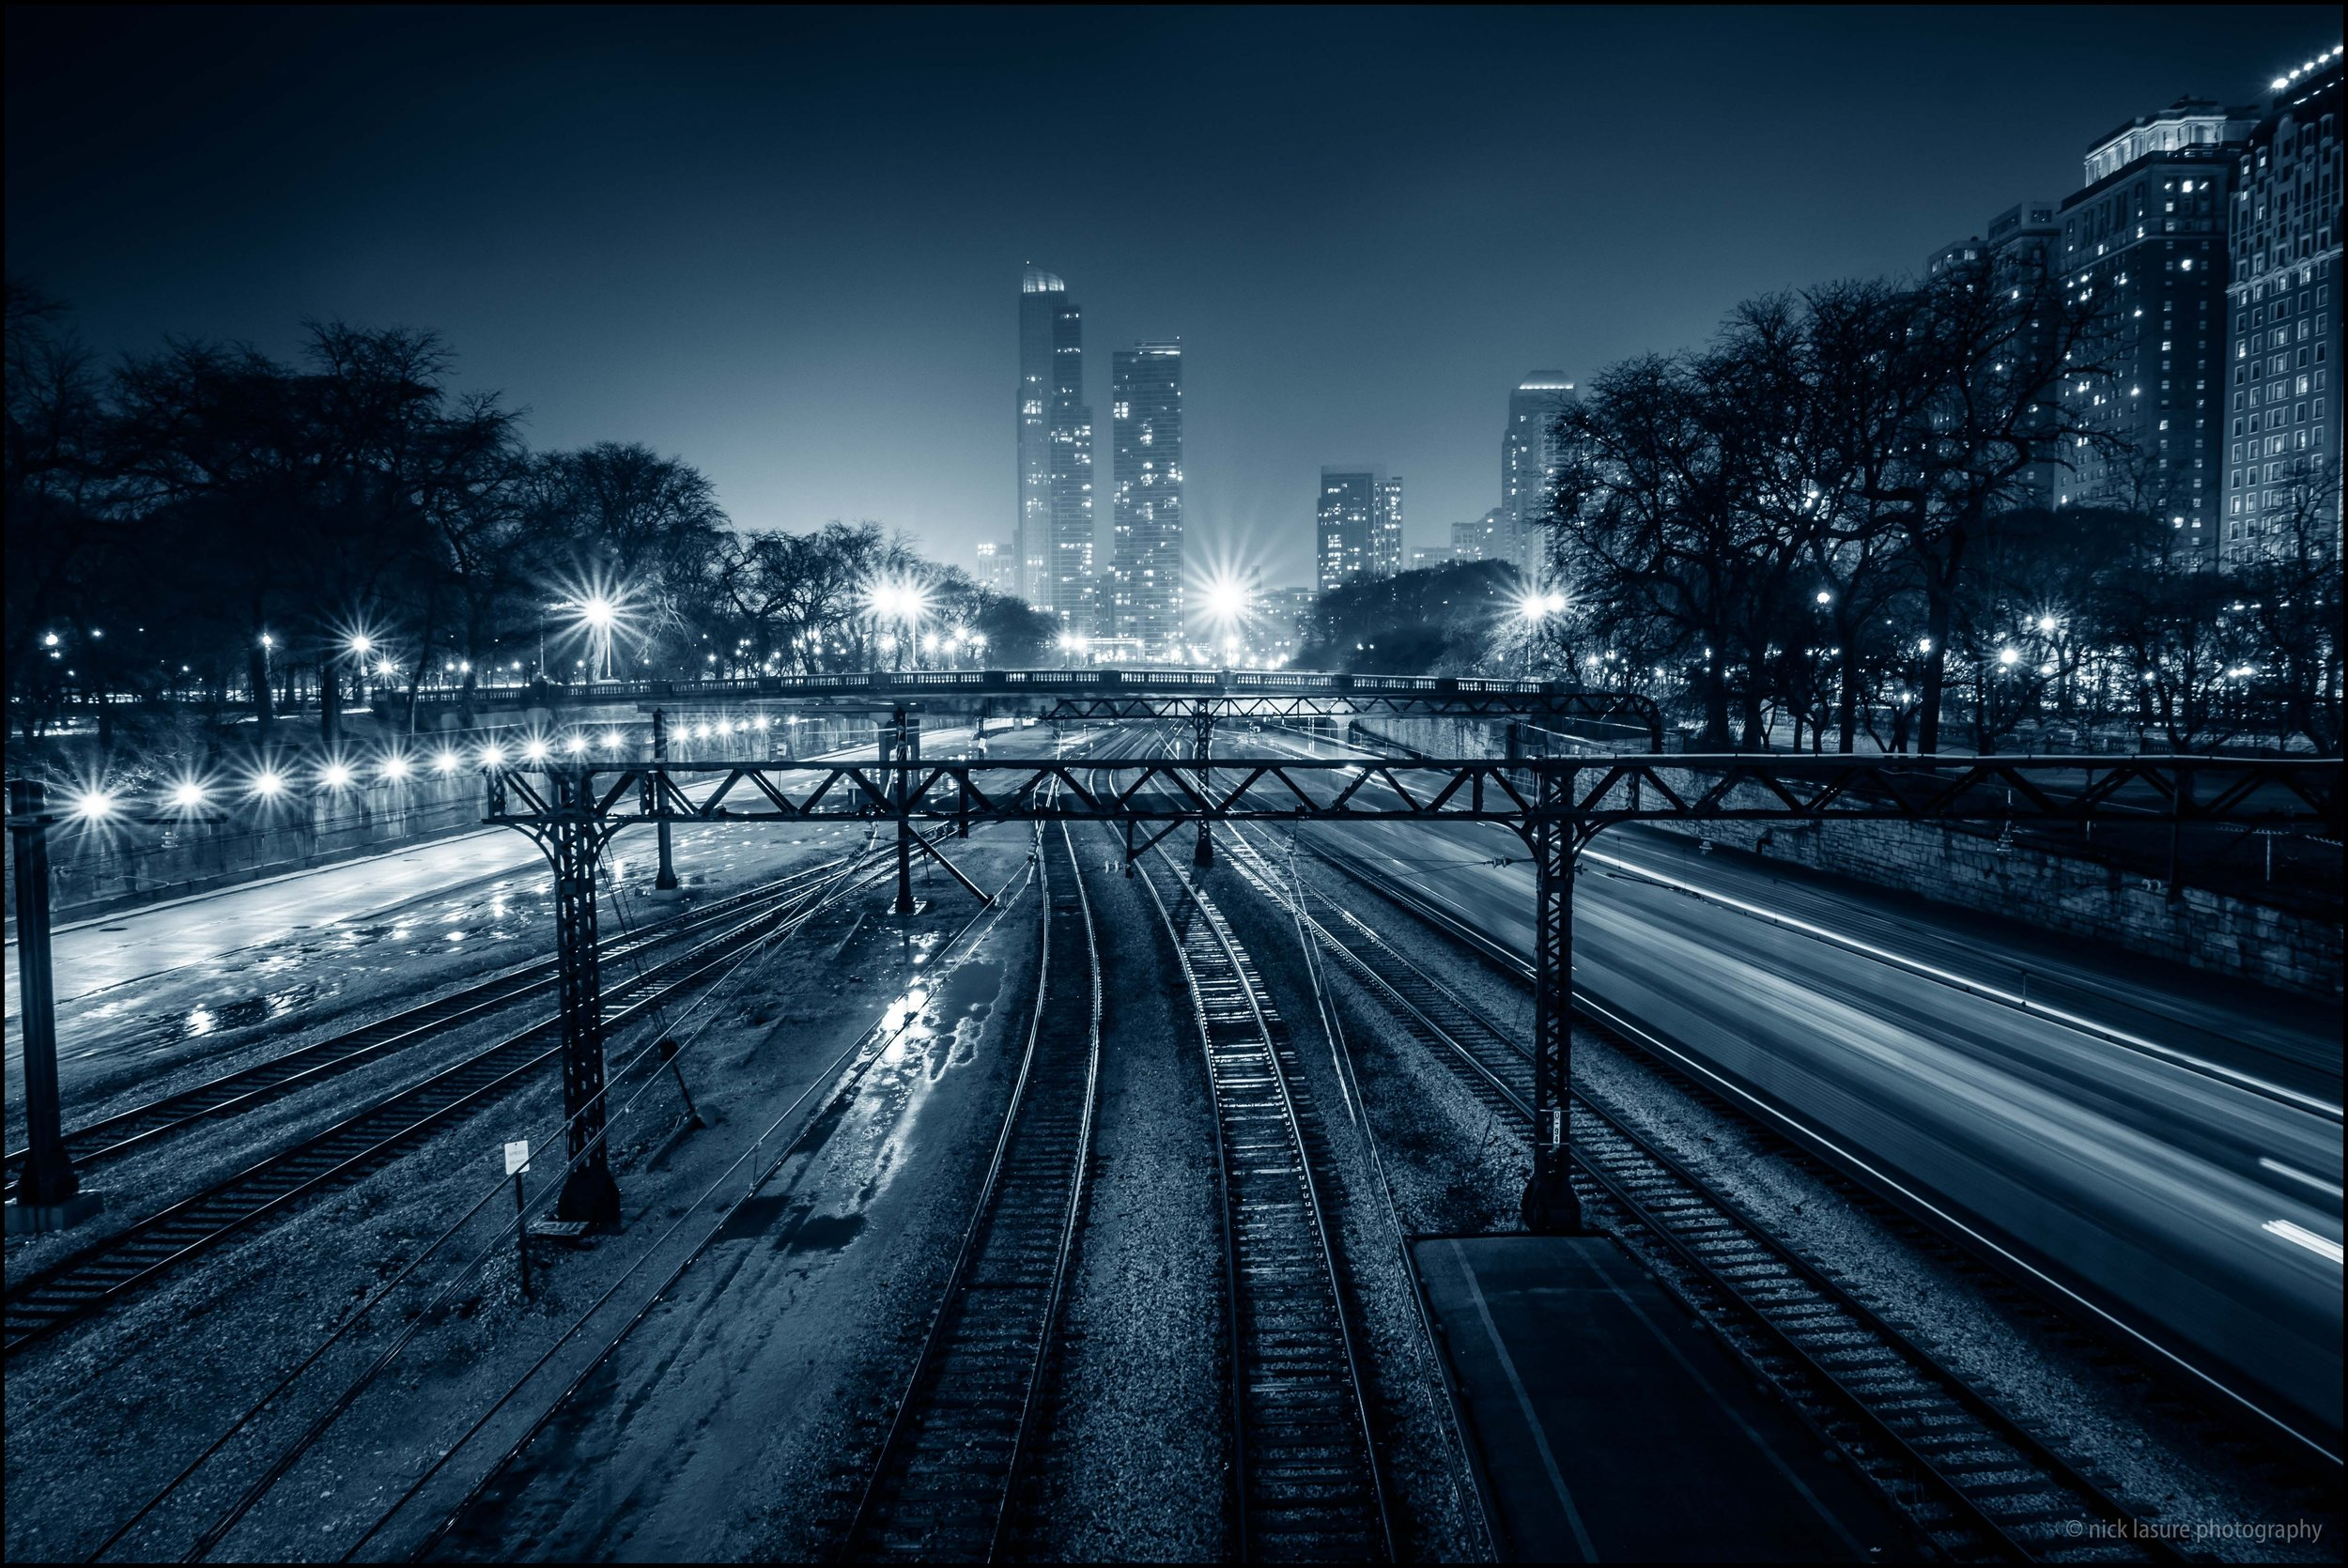 Chicago at night. One of the few favorite images that I captured with the LX10, for those that like natural star bursts f/8 worked perfect in this case.